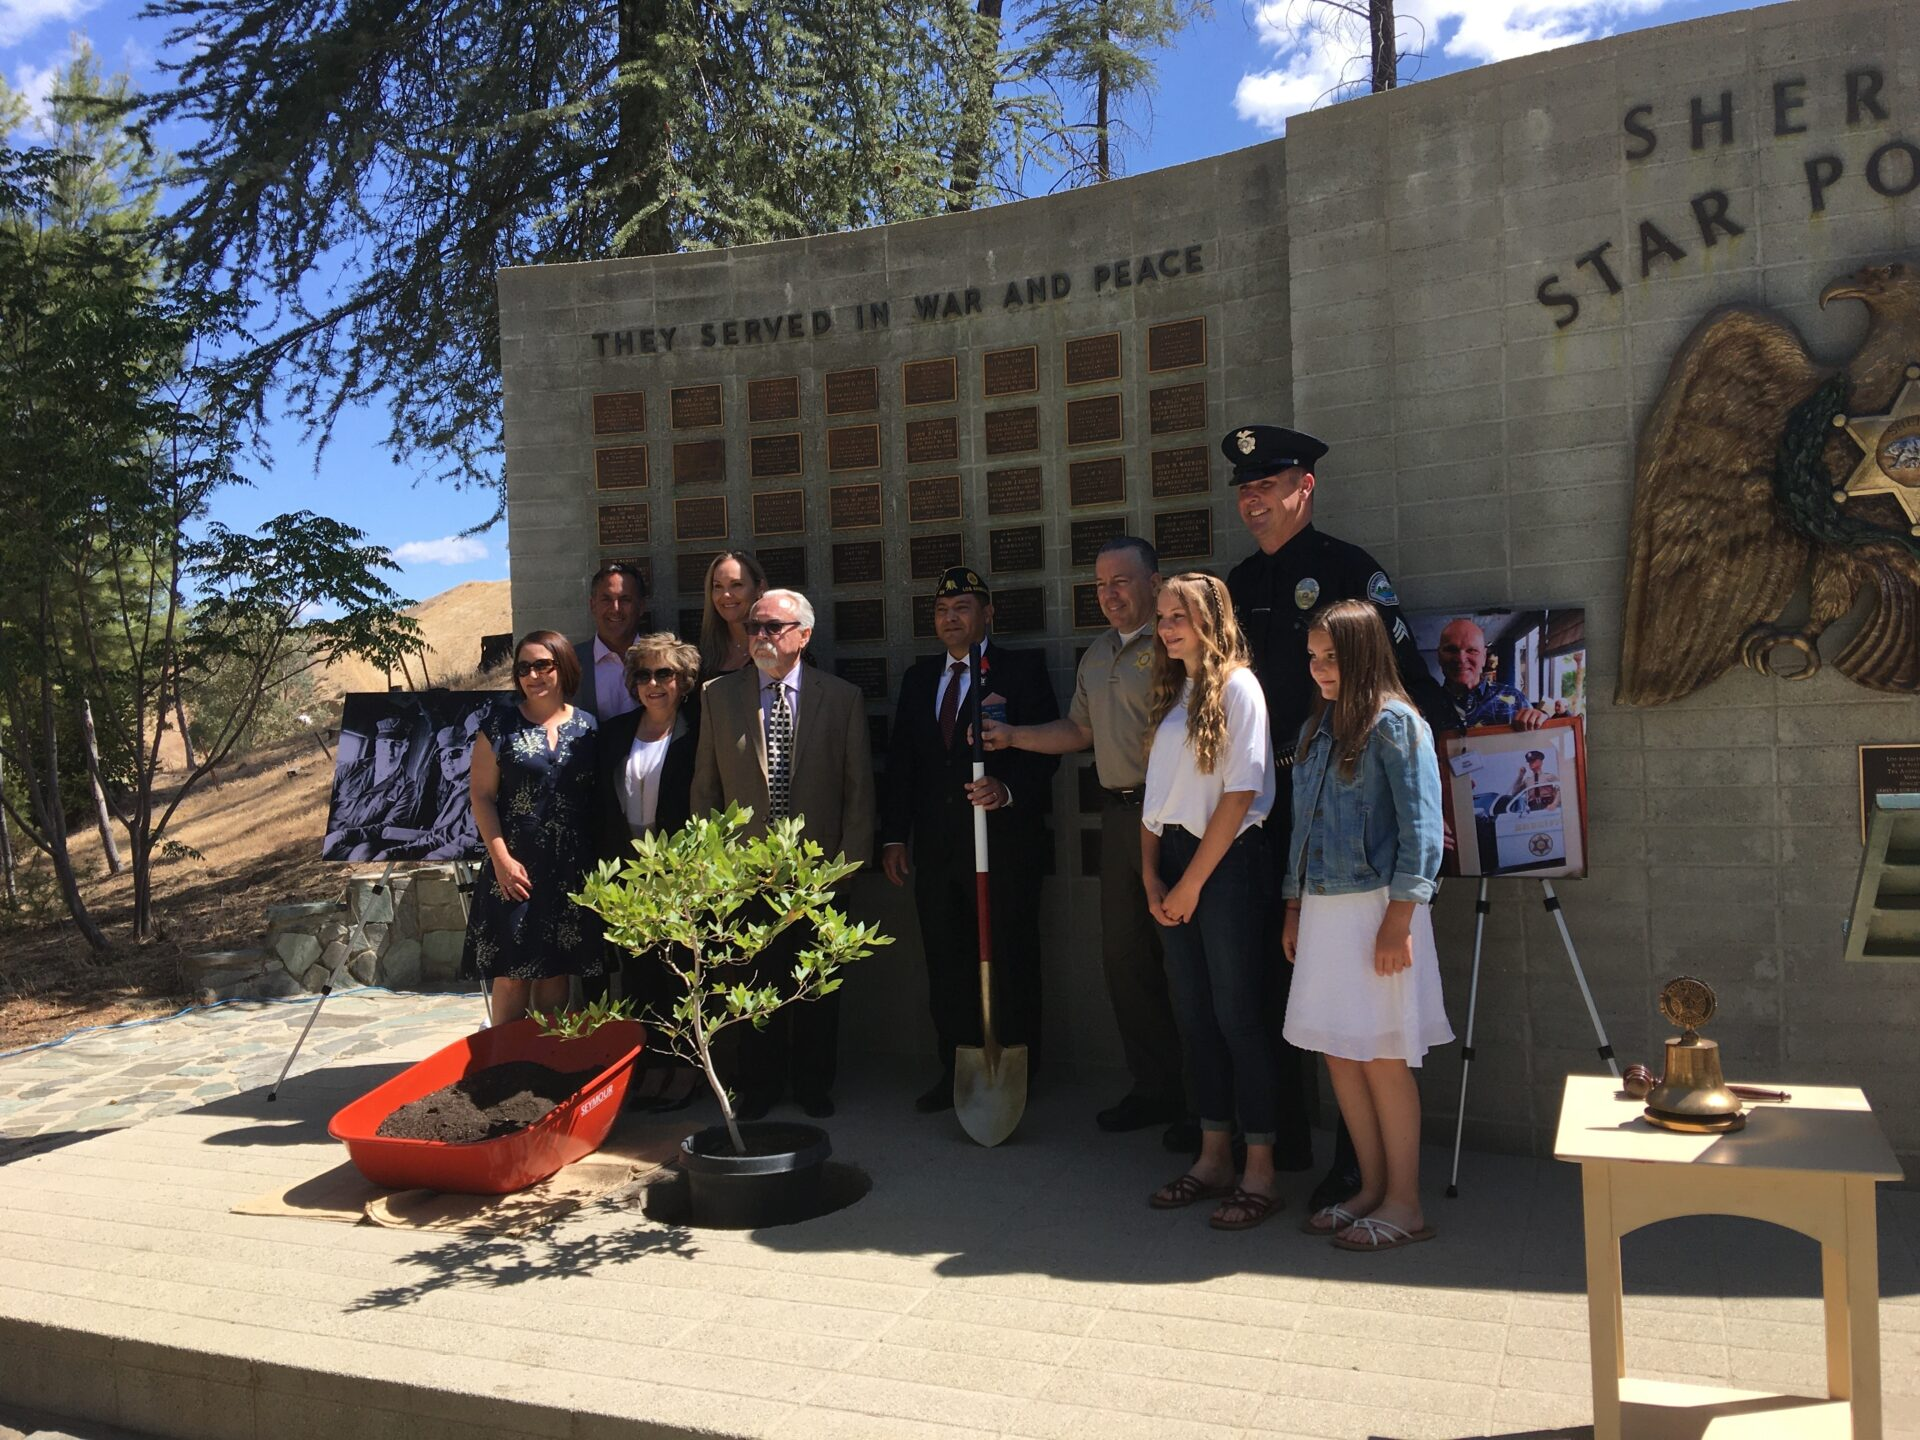 Family standing in front of memoral wall, small tree is being planted, Sheriff Alex Villanueva is holding a shoval.